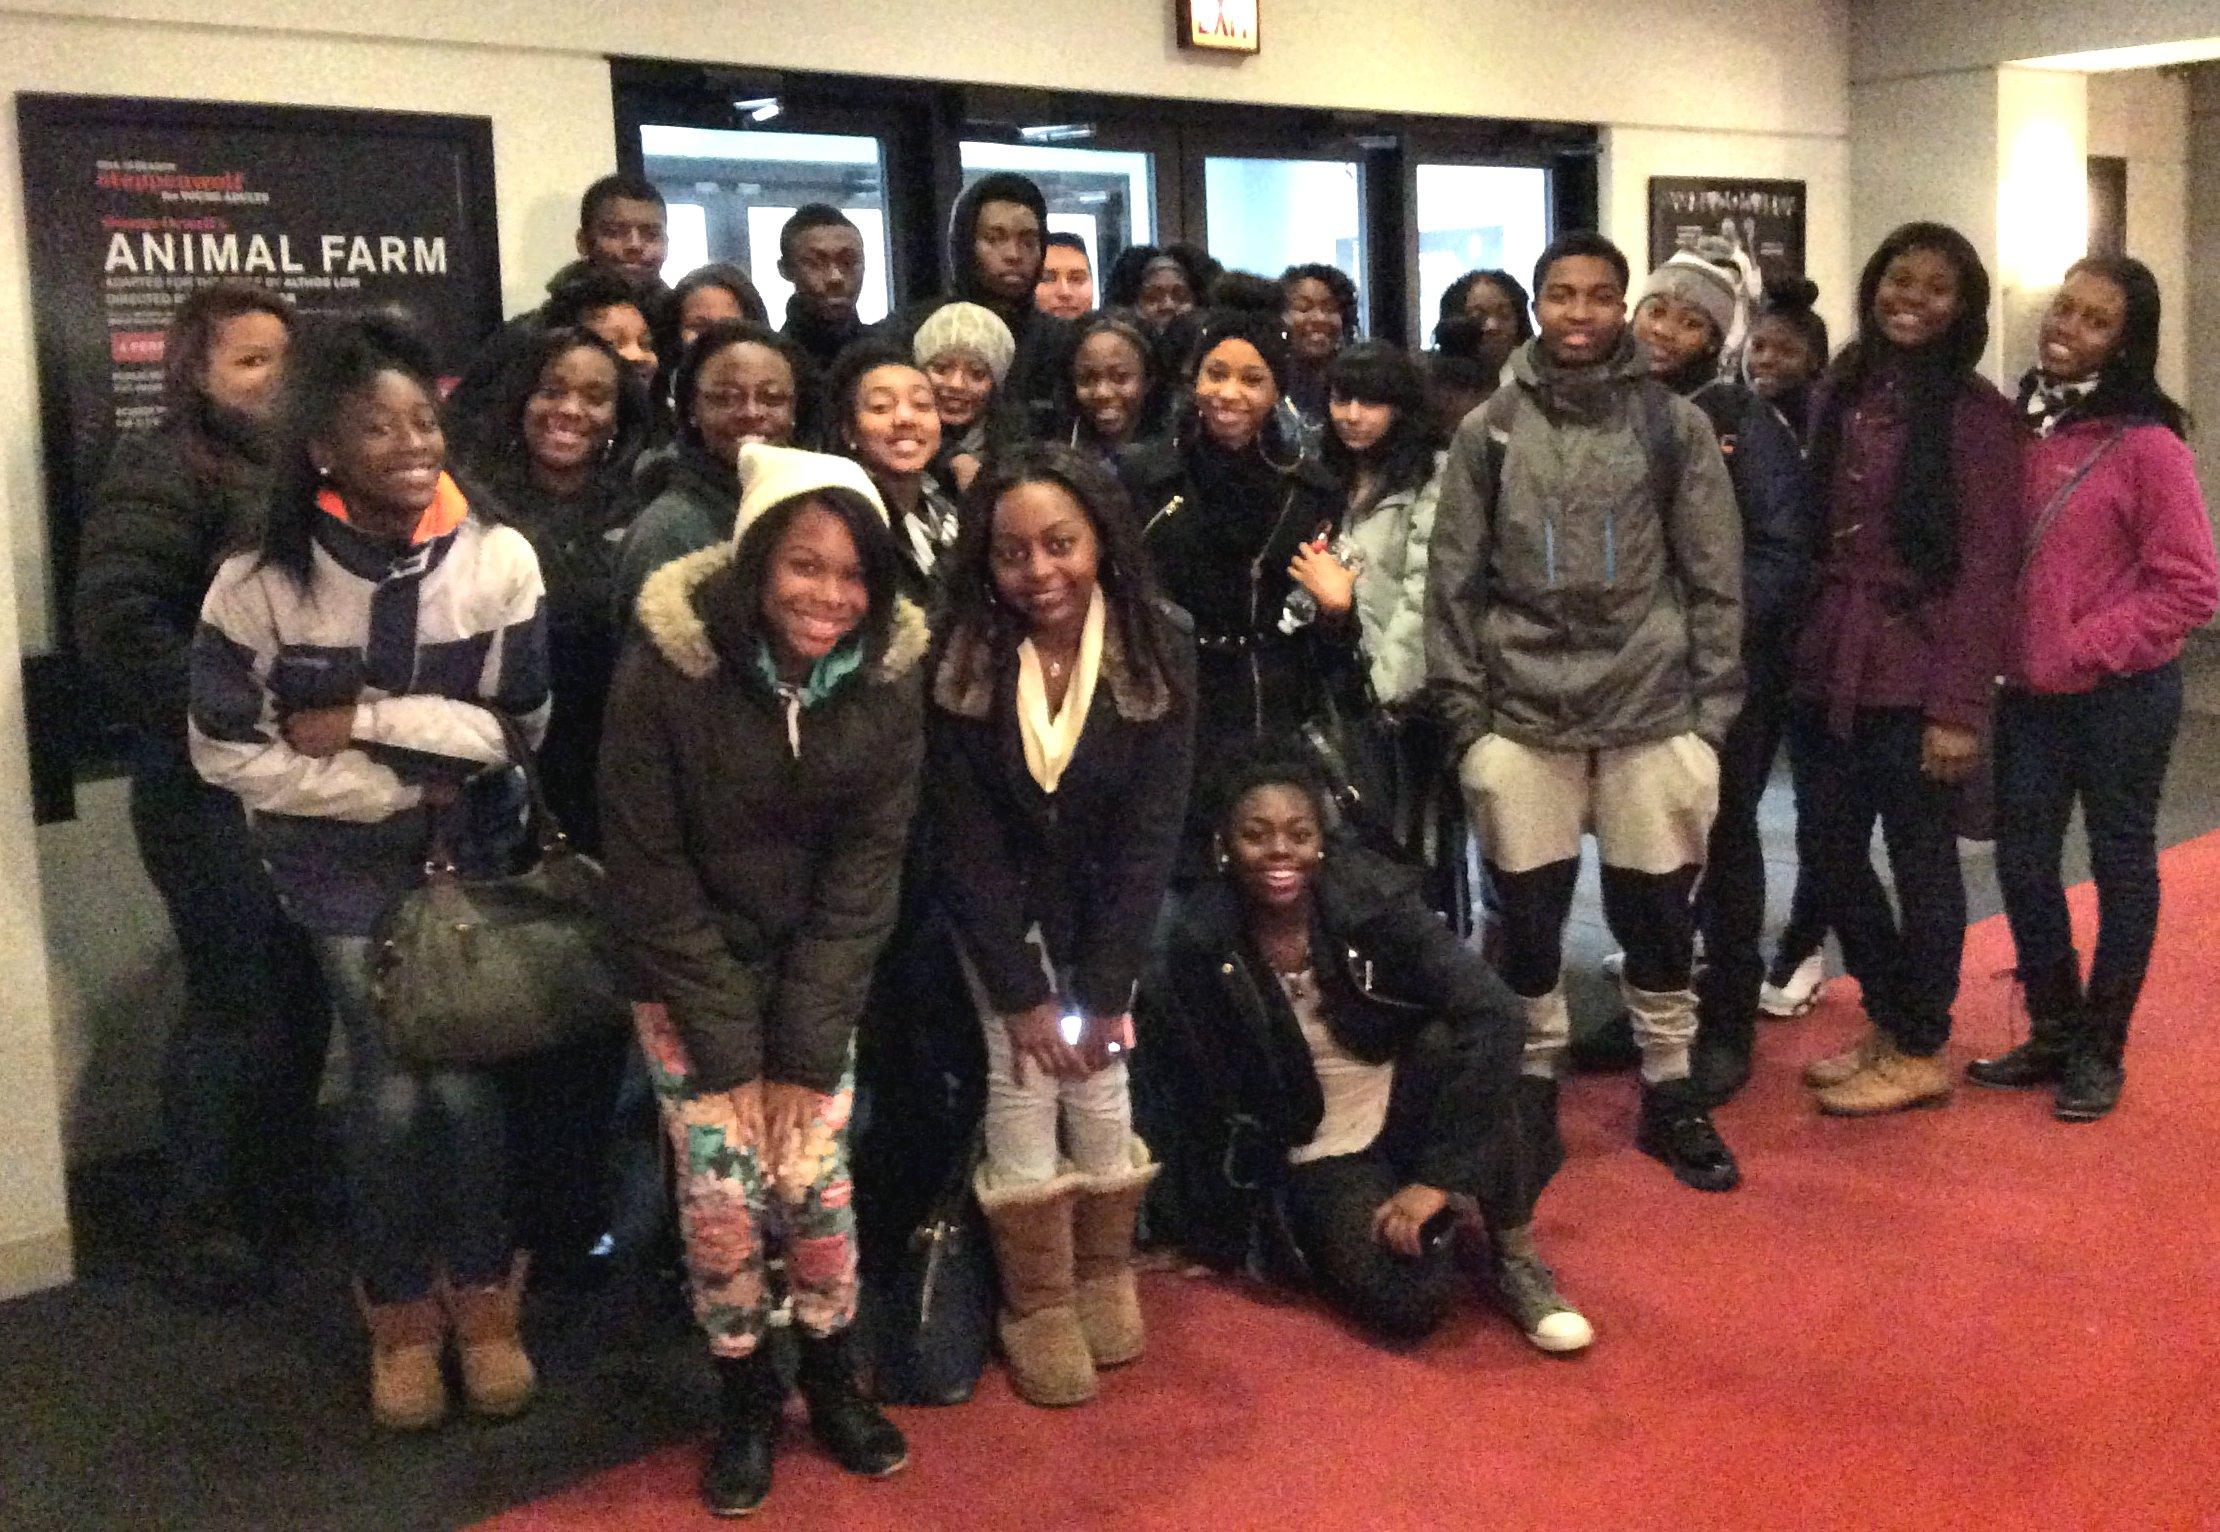 Photo of students at Steppenwolf to watch Animal Farm.